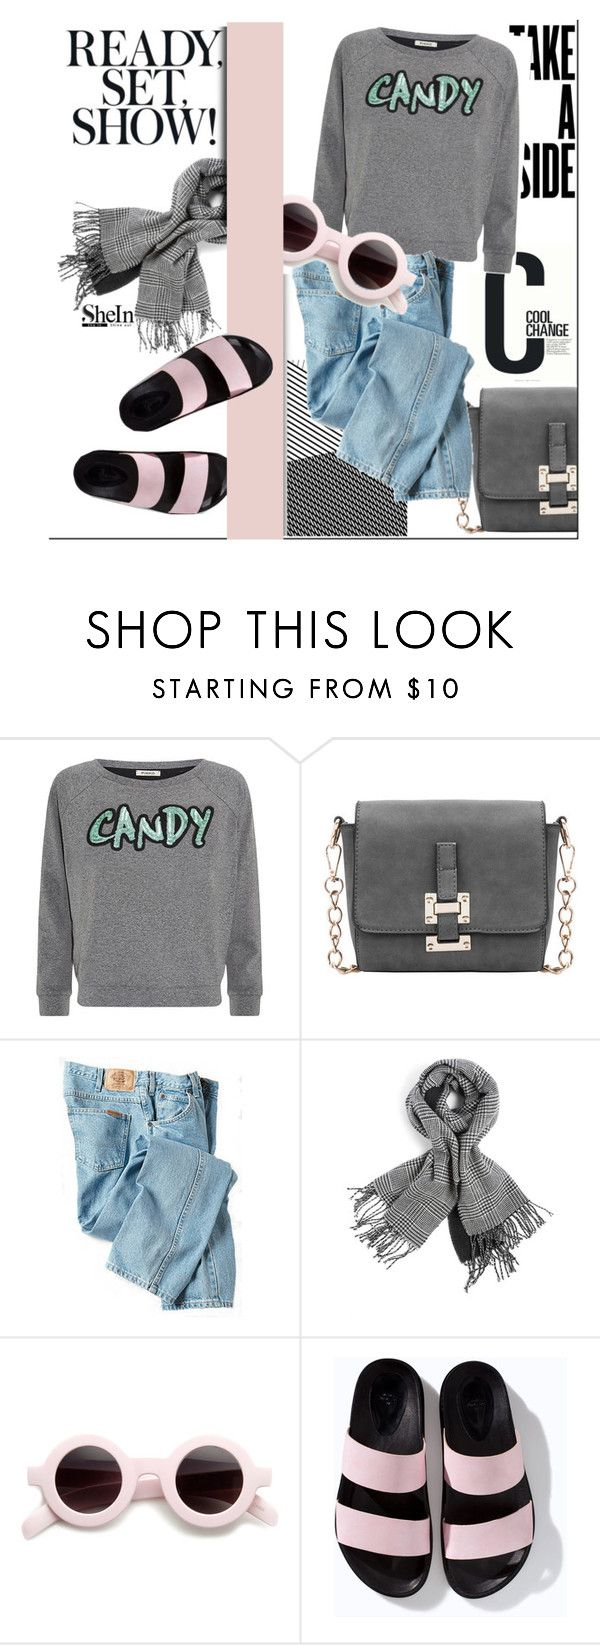 """""""Are you ready? :)"""" by nastya-d ❤ liked on Polyvore featuring Cool Change, Pinko, CO, Dickies, Zara, women's clothing, women's fashion, women, female and woman"""